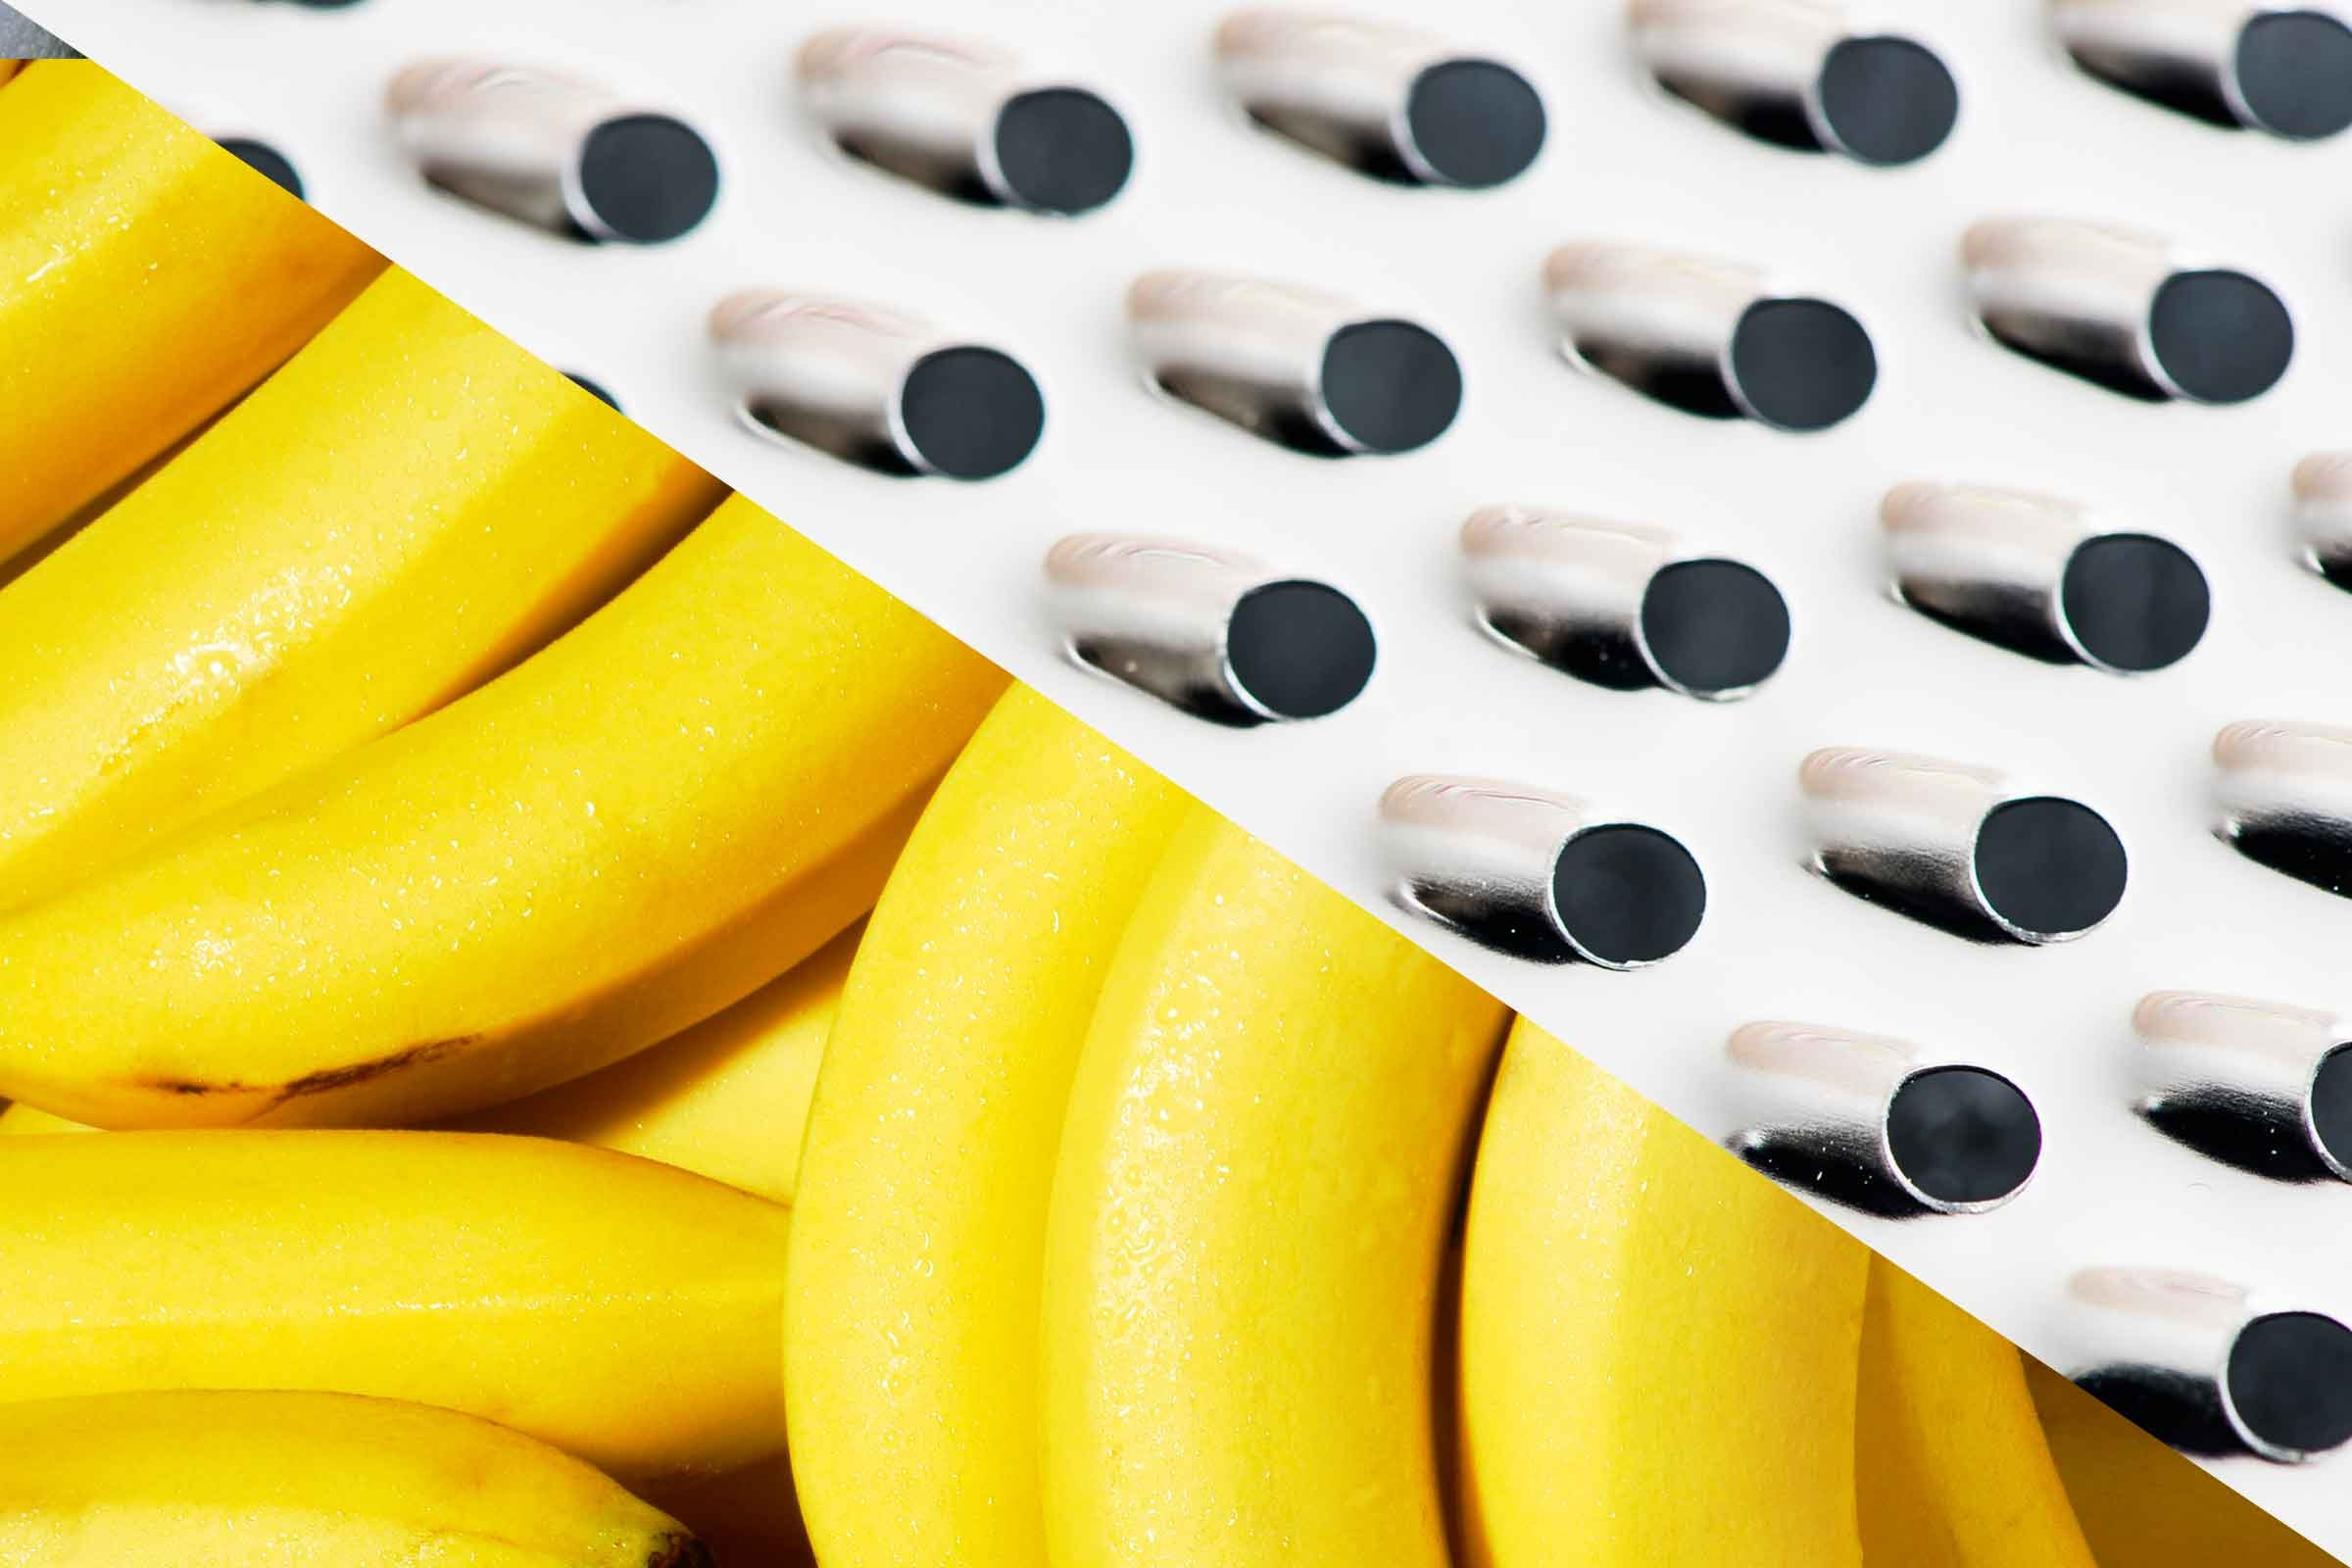 01-foods-you-can-grate-bananas